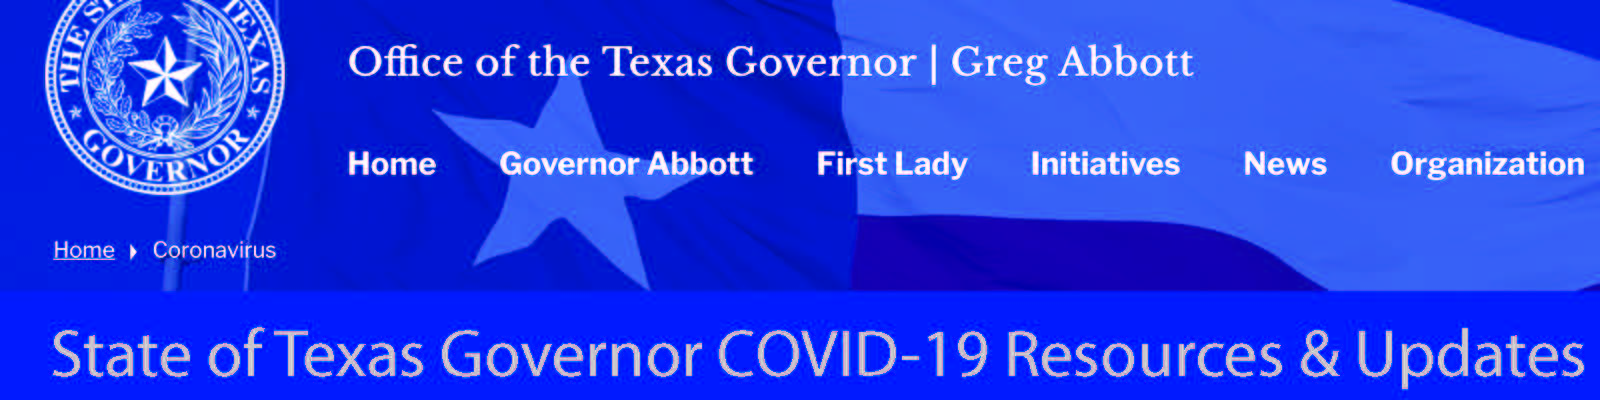 Texas Governor's COVID-19 Resources & Updates Header Image